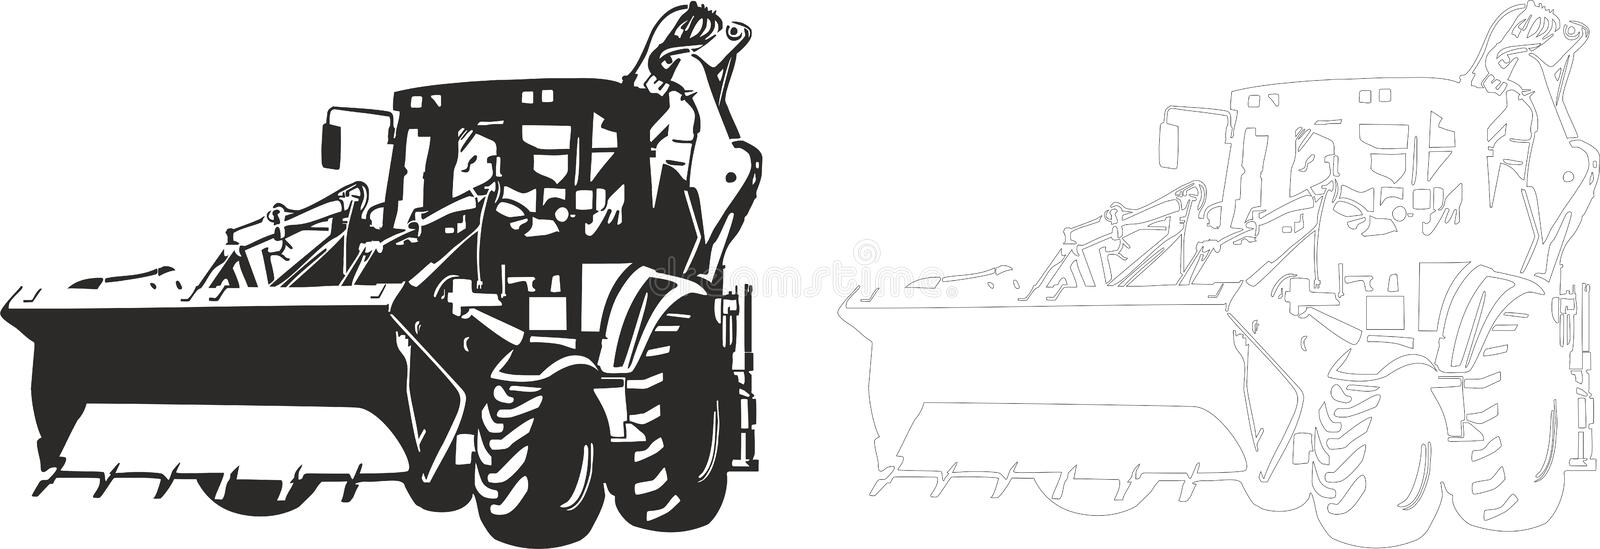 Bulldozer royalty illustrazione gratis